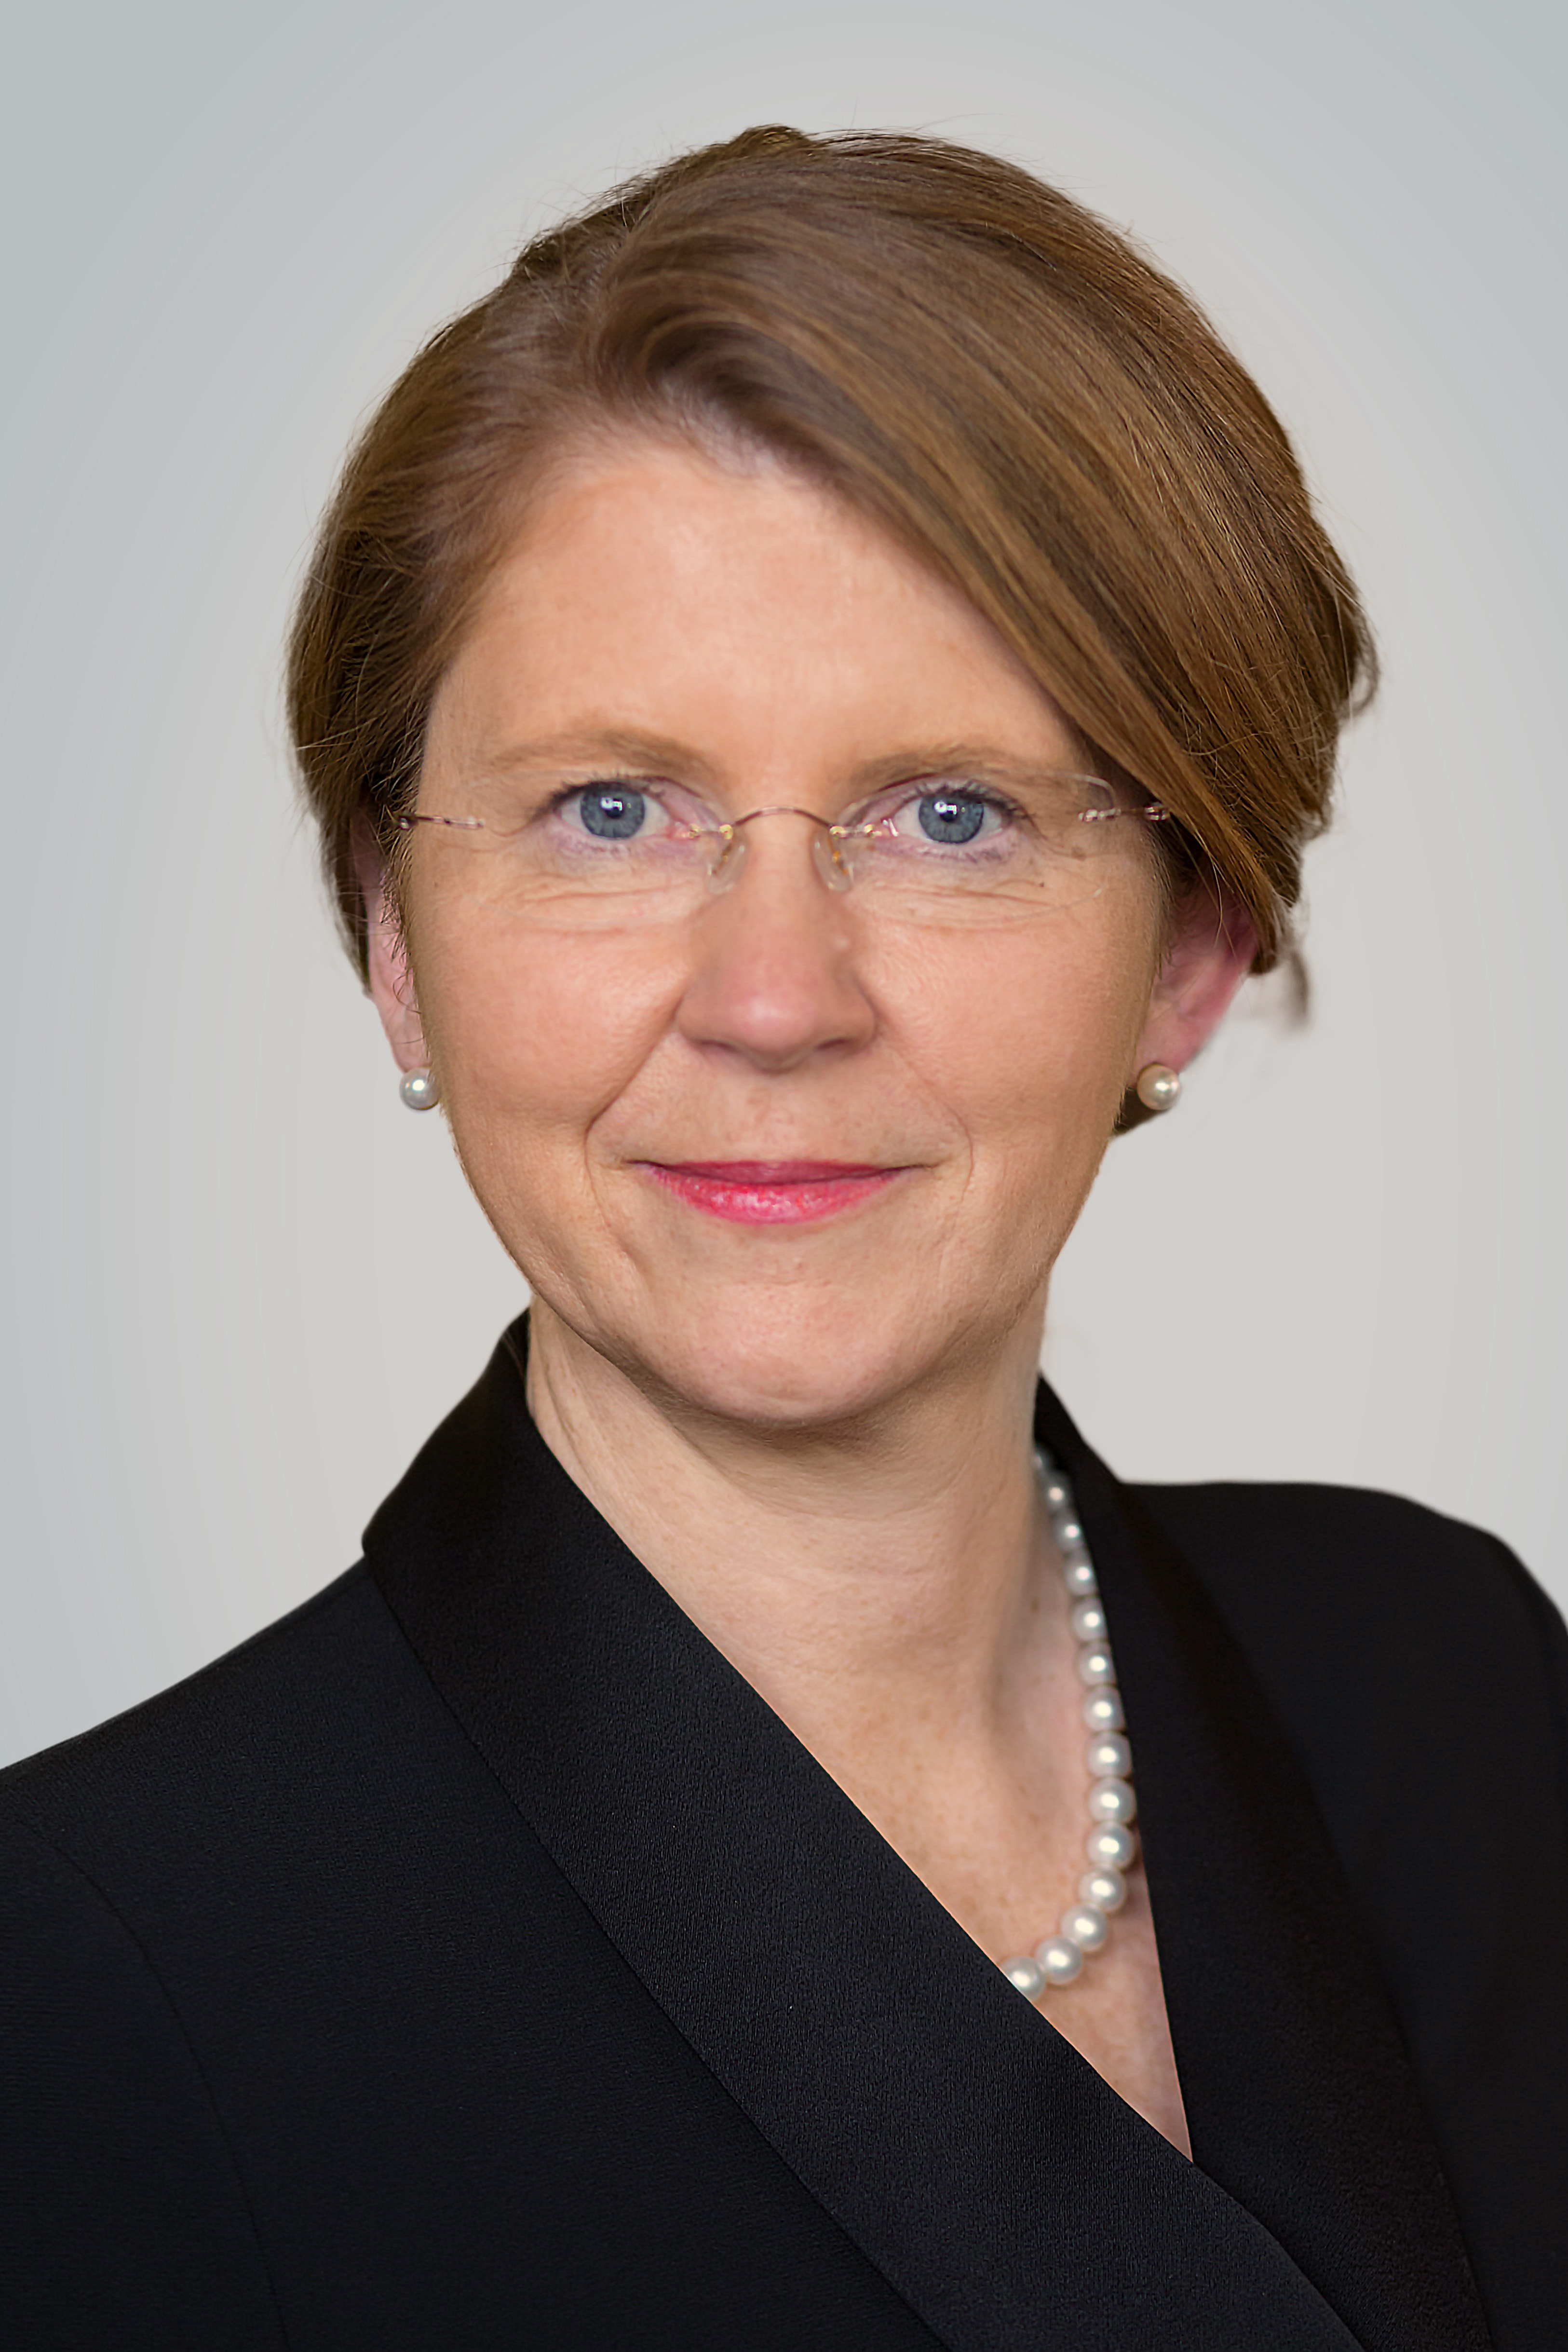 Katy Hoffmeister, Minister of Justice of the state of Mecklenburg-Vorpommern